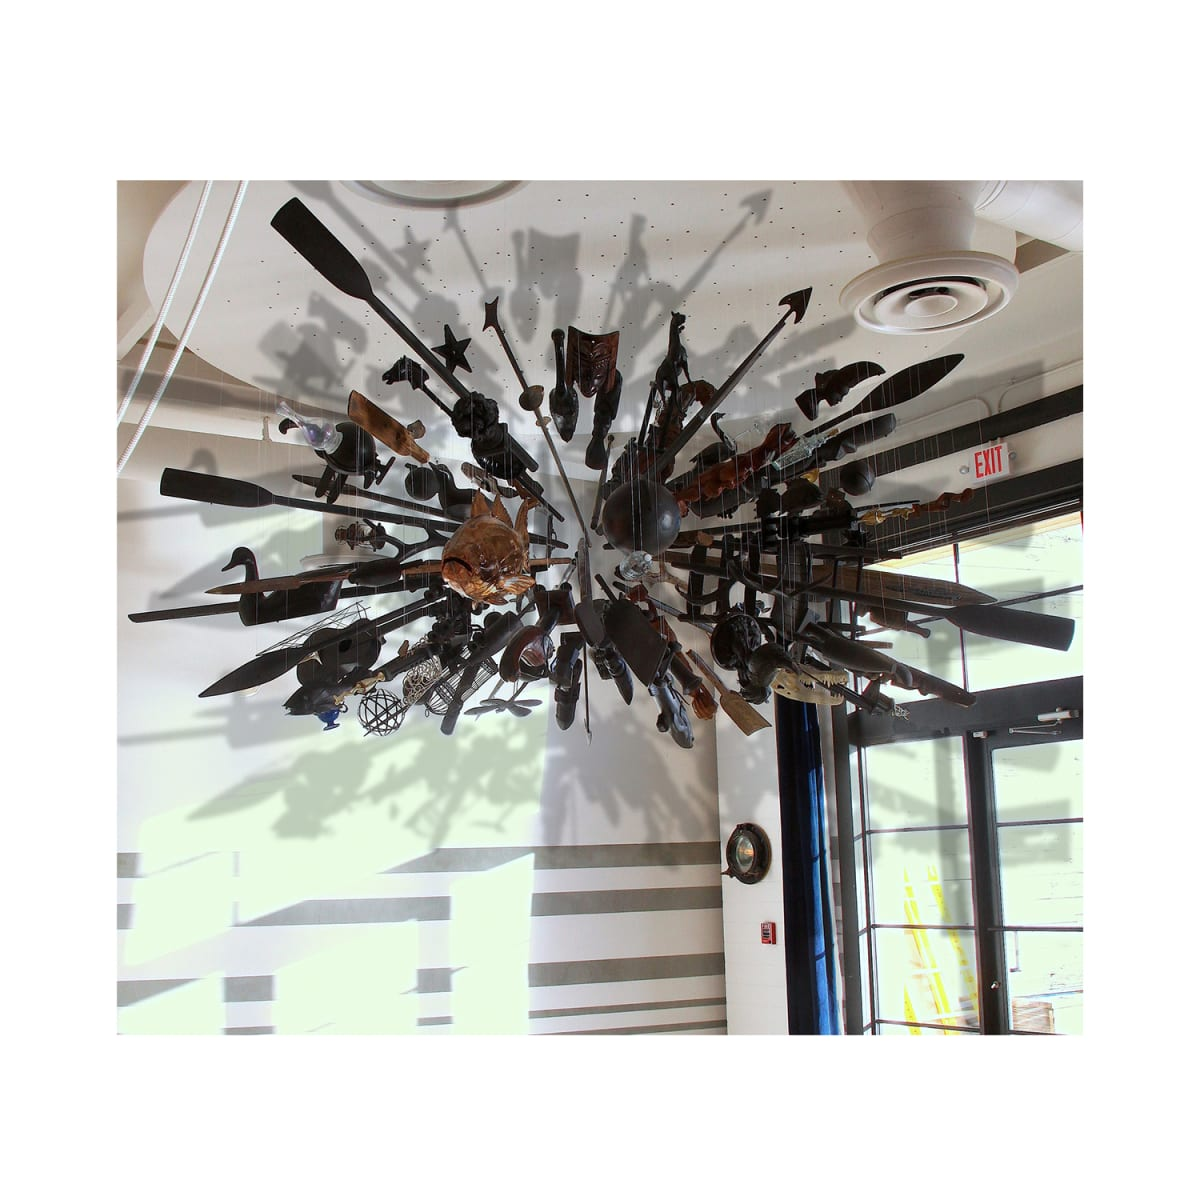 Suspended Sculpture I: Appropriations from el Rio, 2013